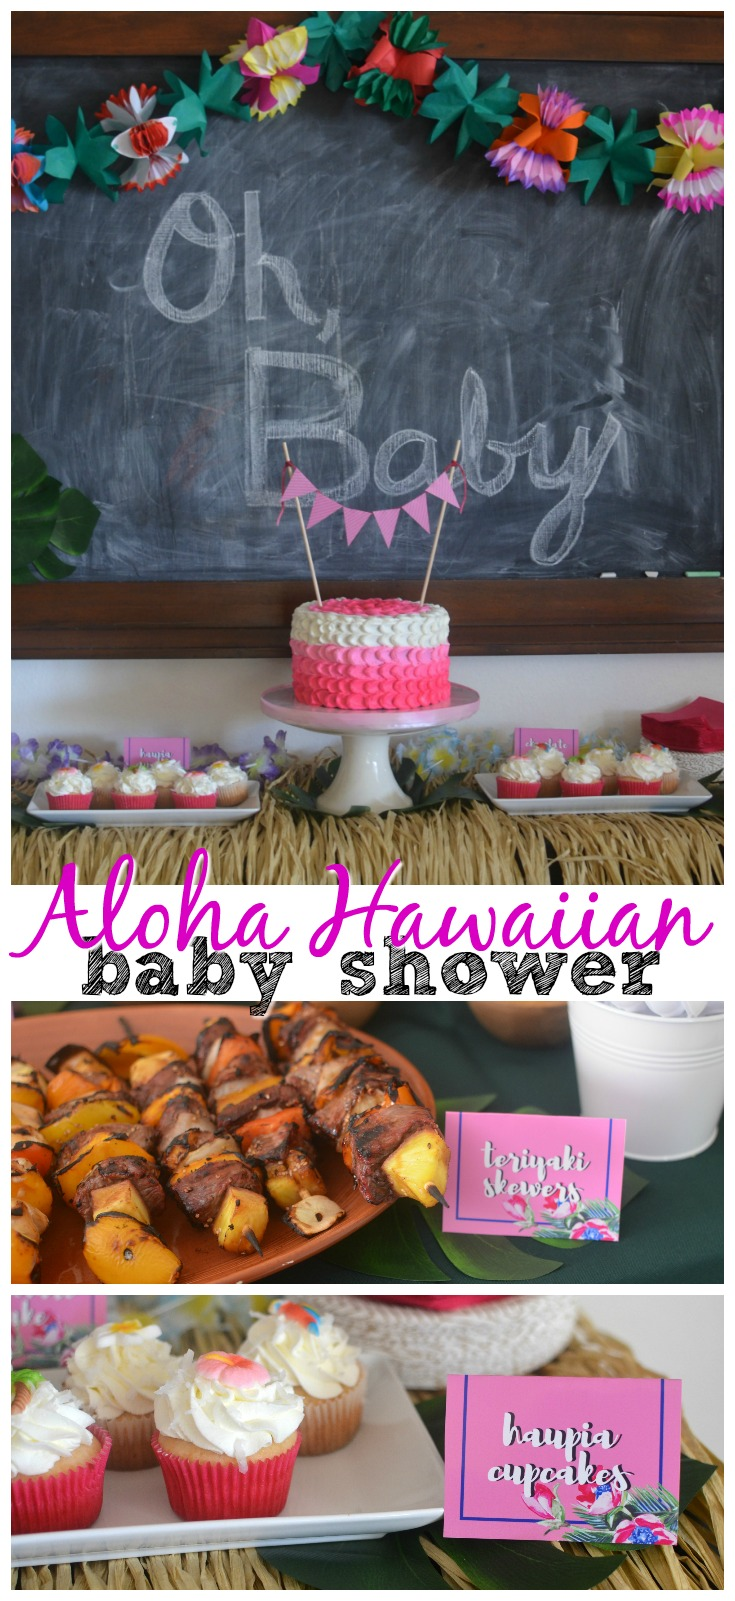 aloha-hawaiian-baby-shower